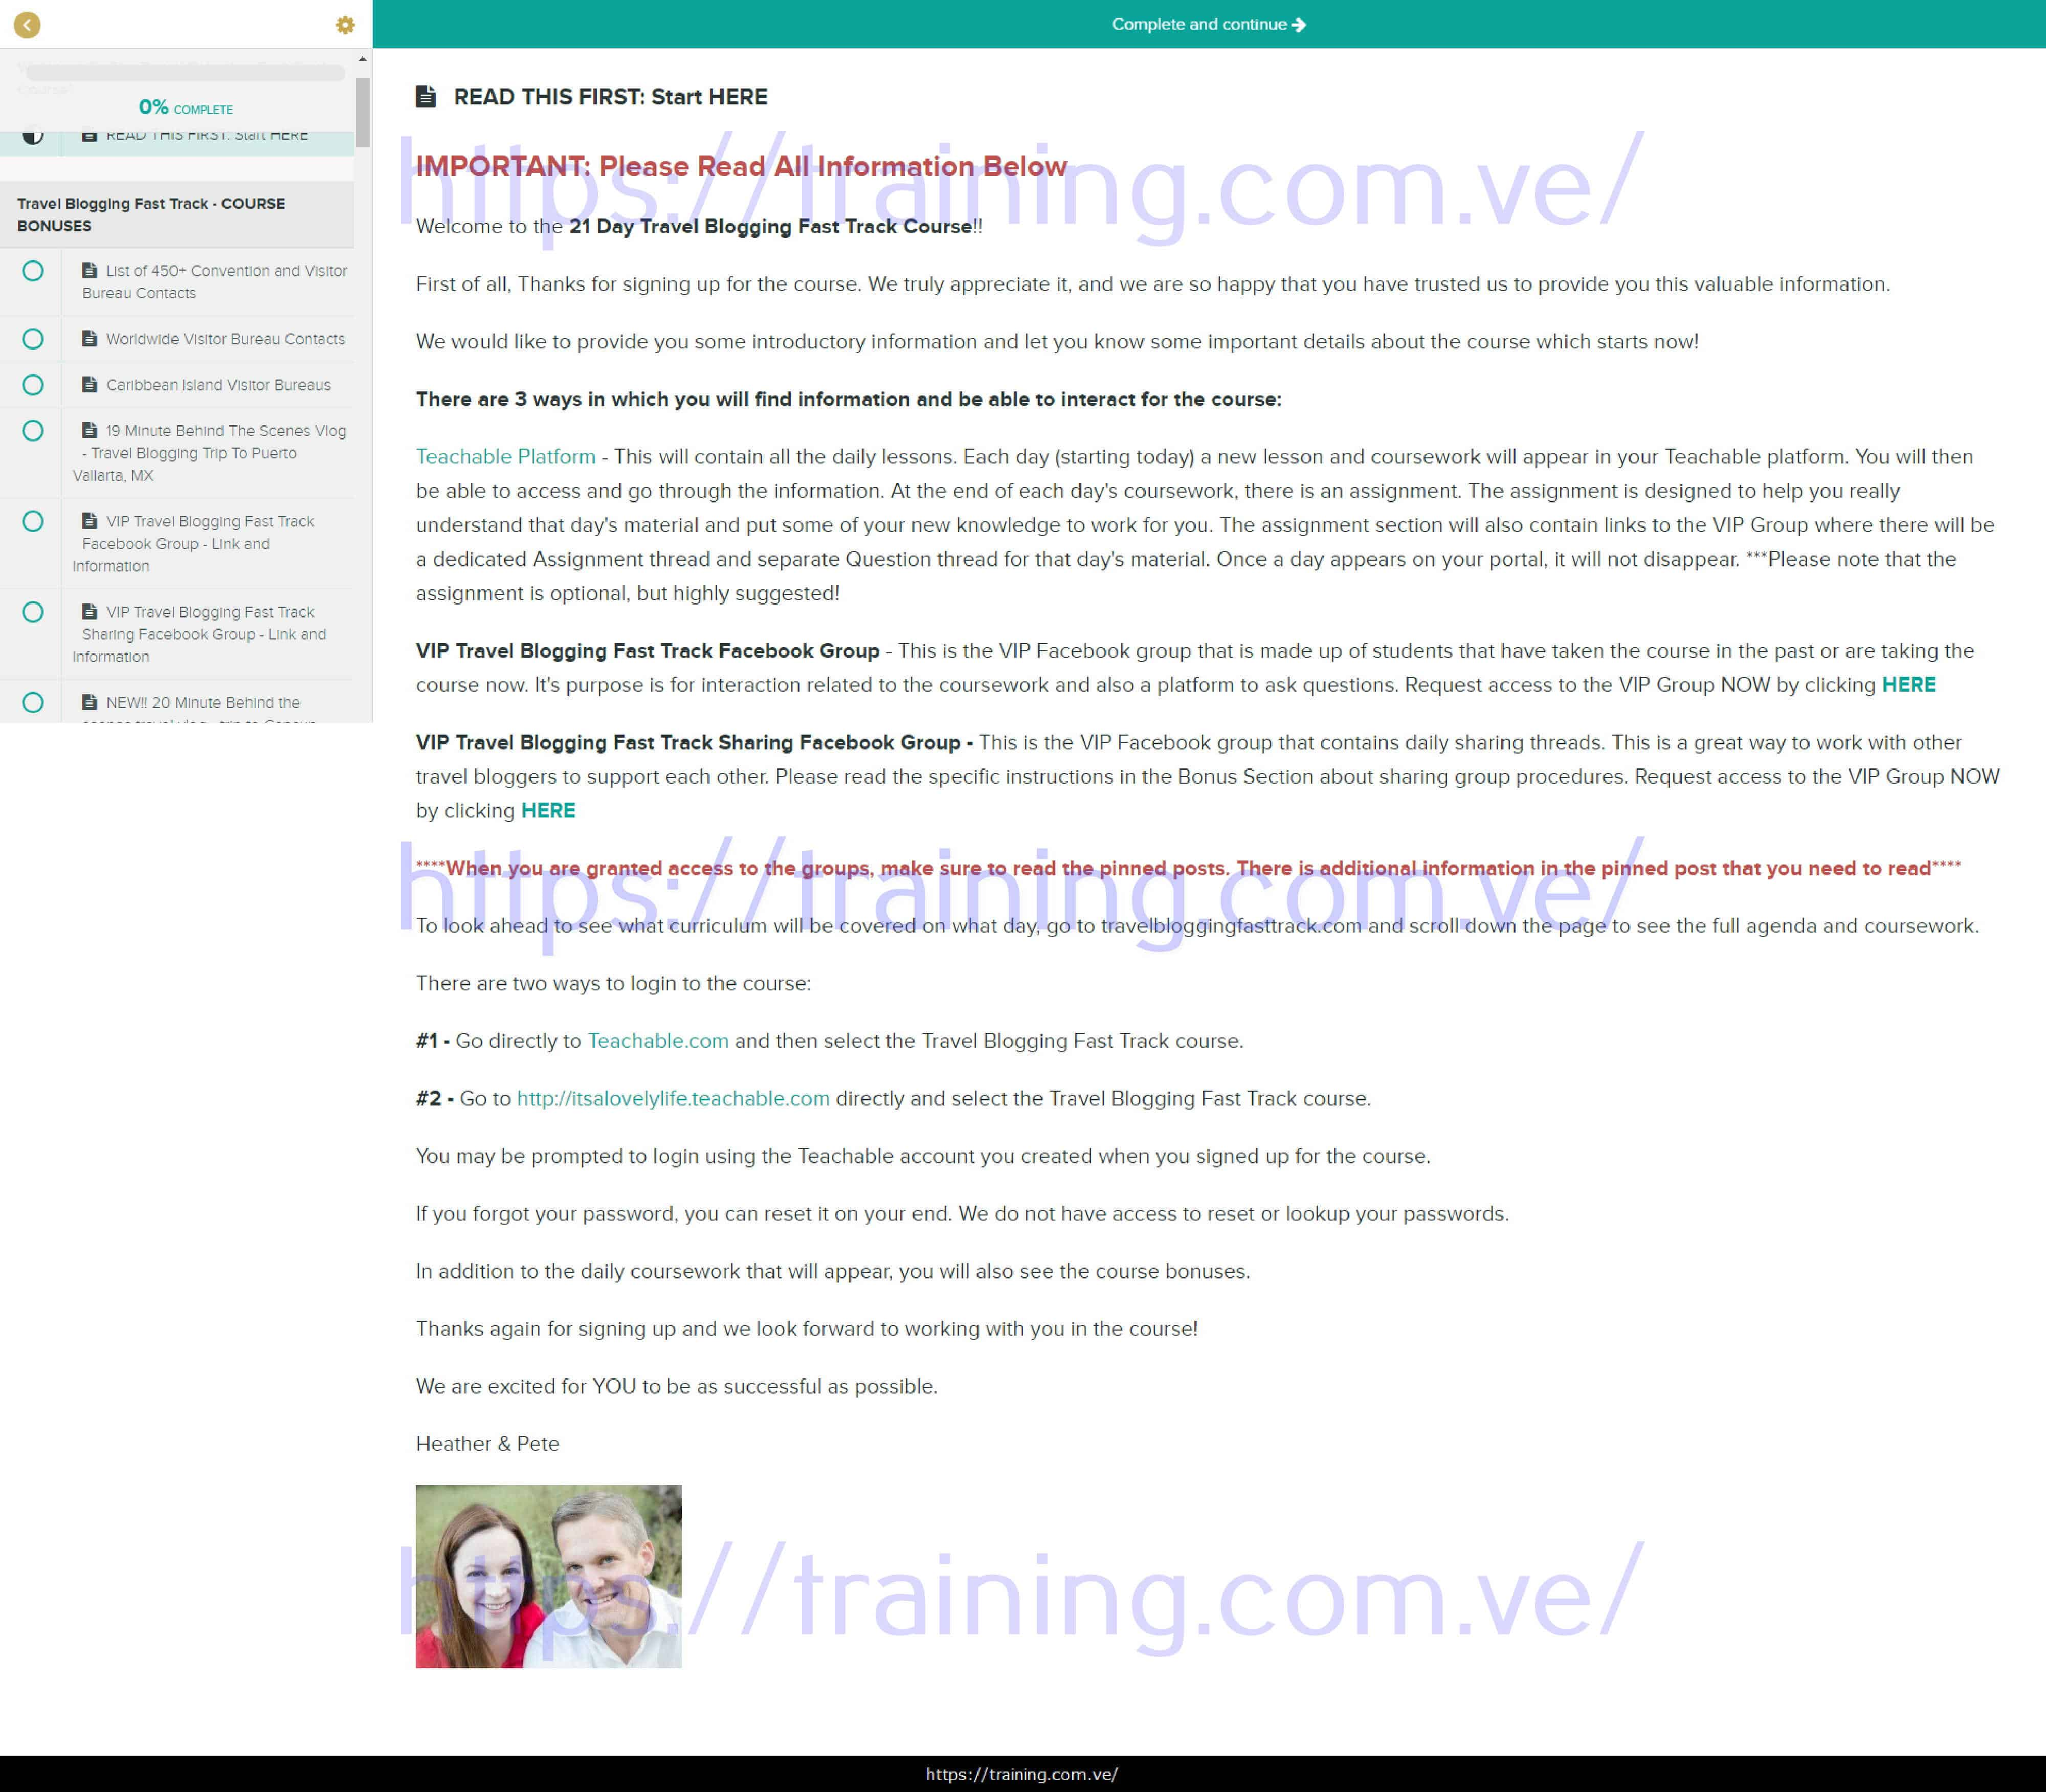 Travel Blogging Fast Track by Heather Delaney Reese Download